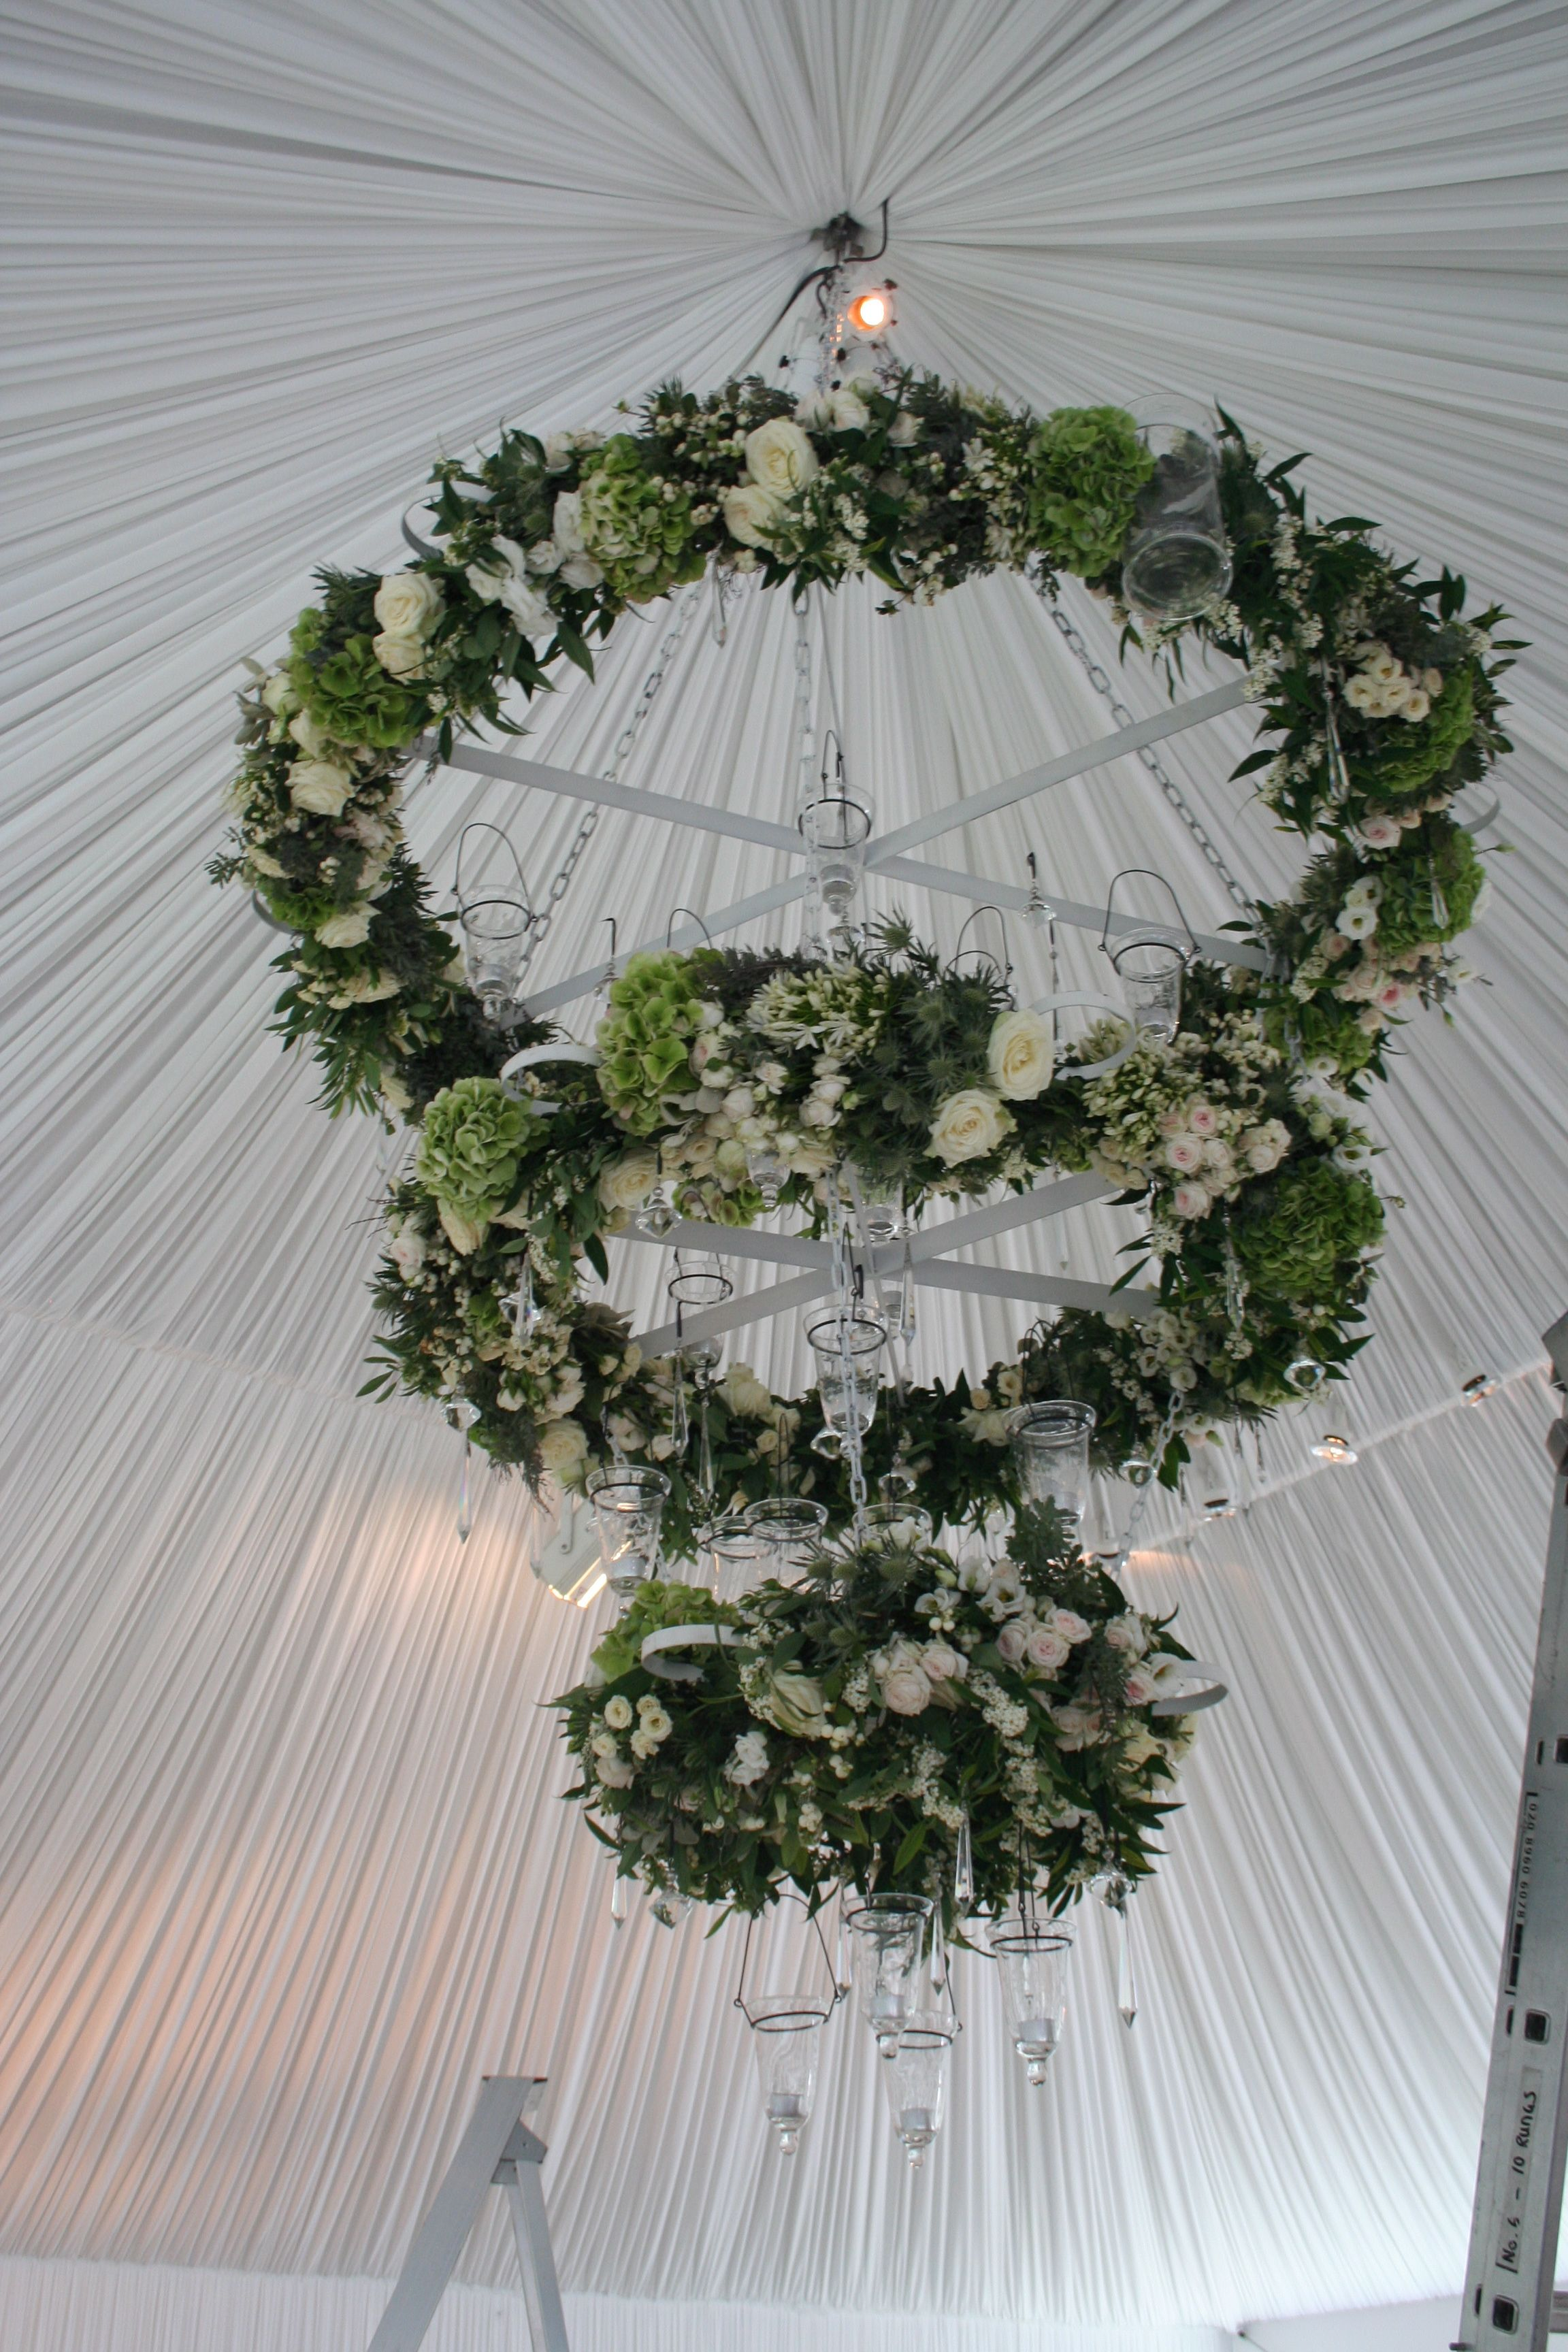 Suspended florals for weddings suspended floral arrangements - Find This Pin And More On Wedding Flowers